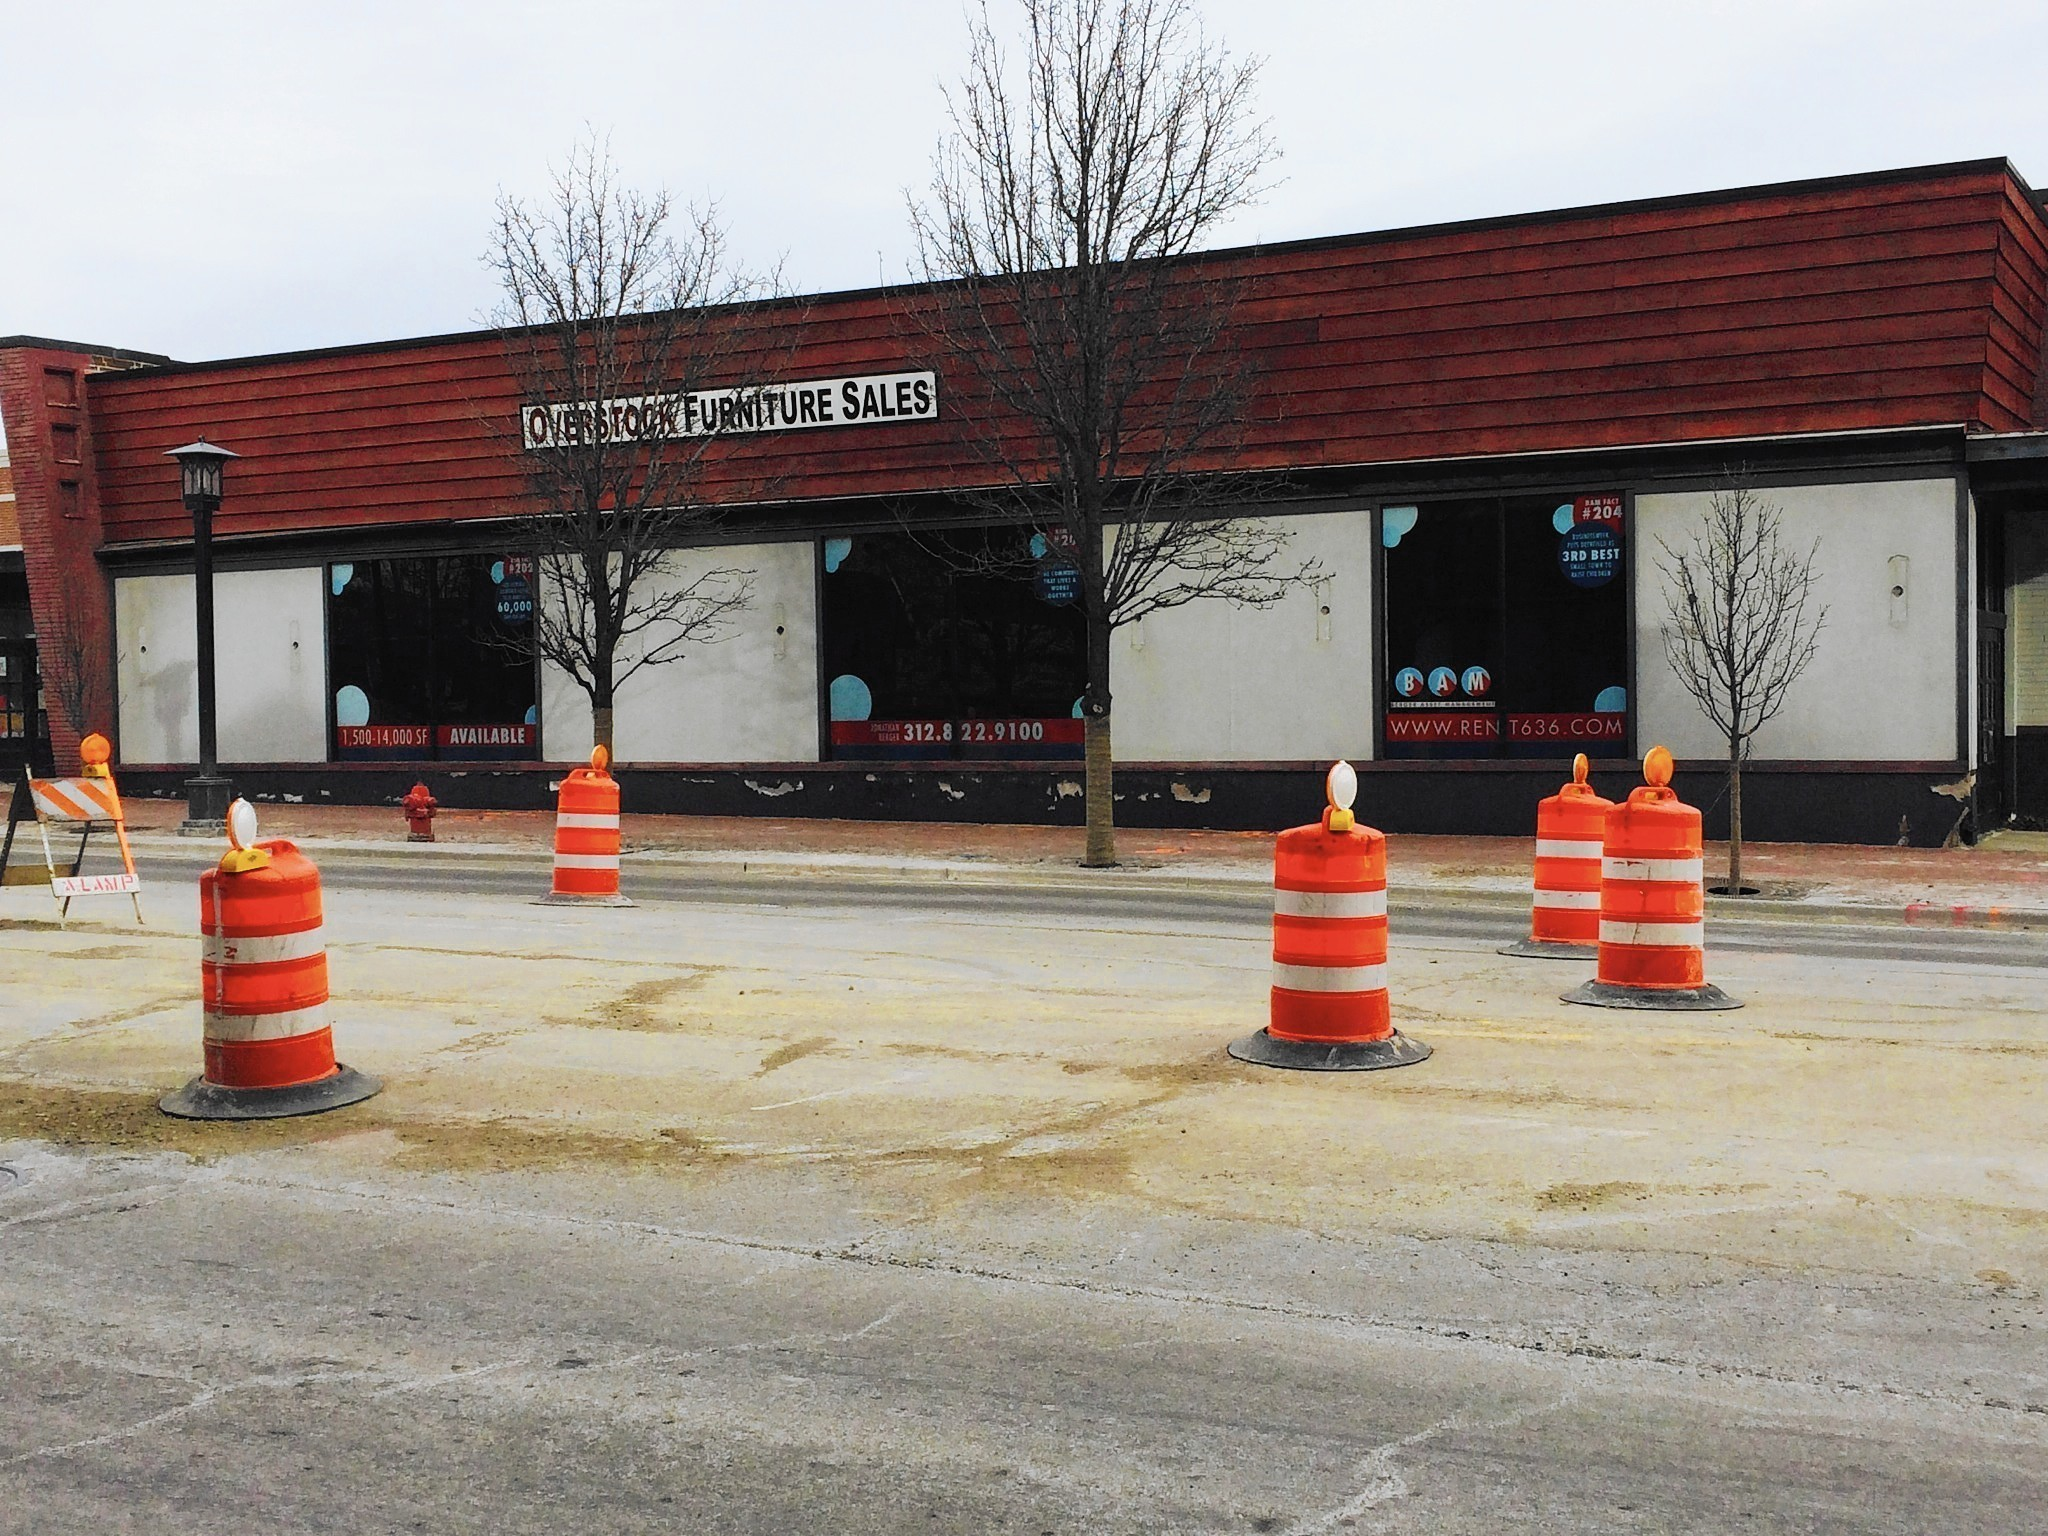 Developer wants to renovate building that housed furniture store ...